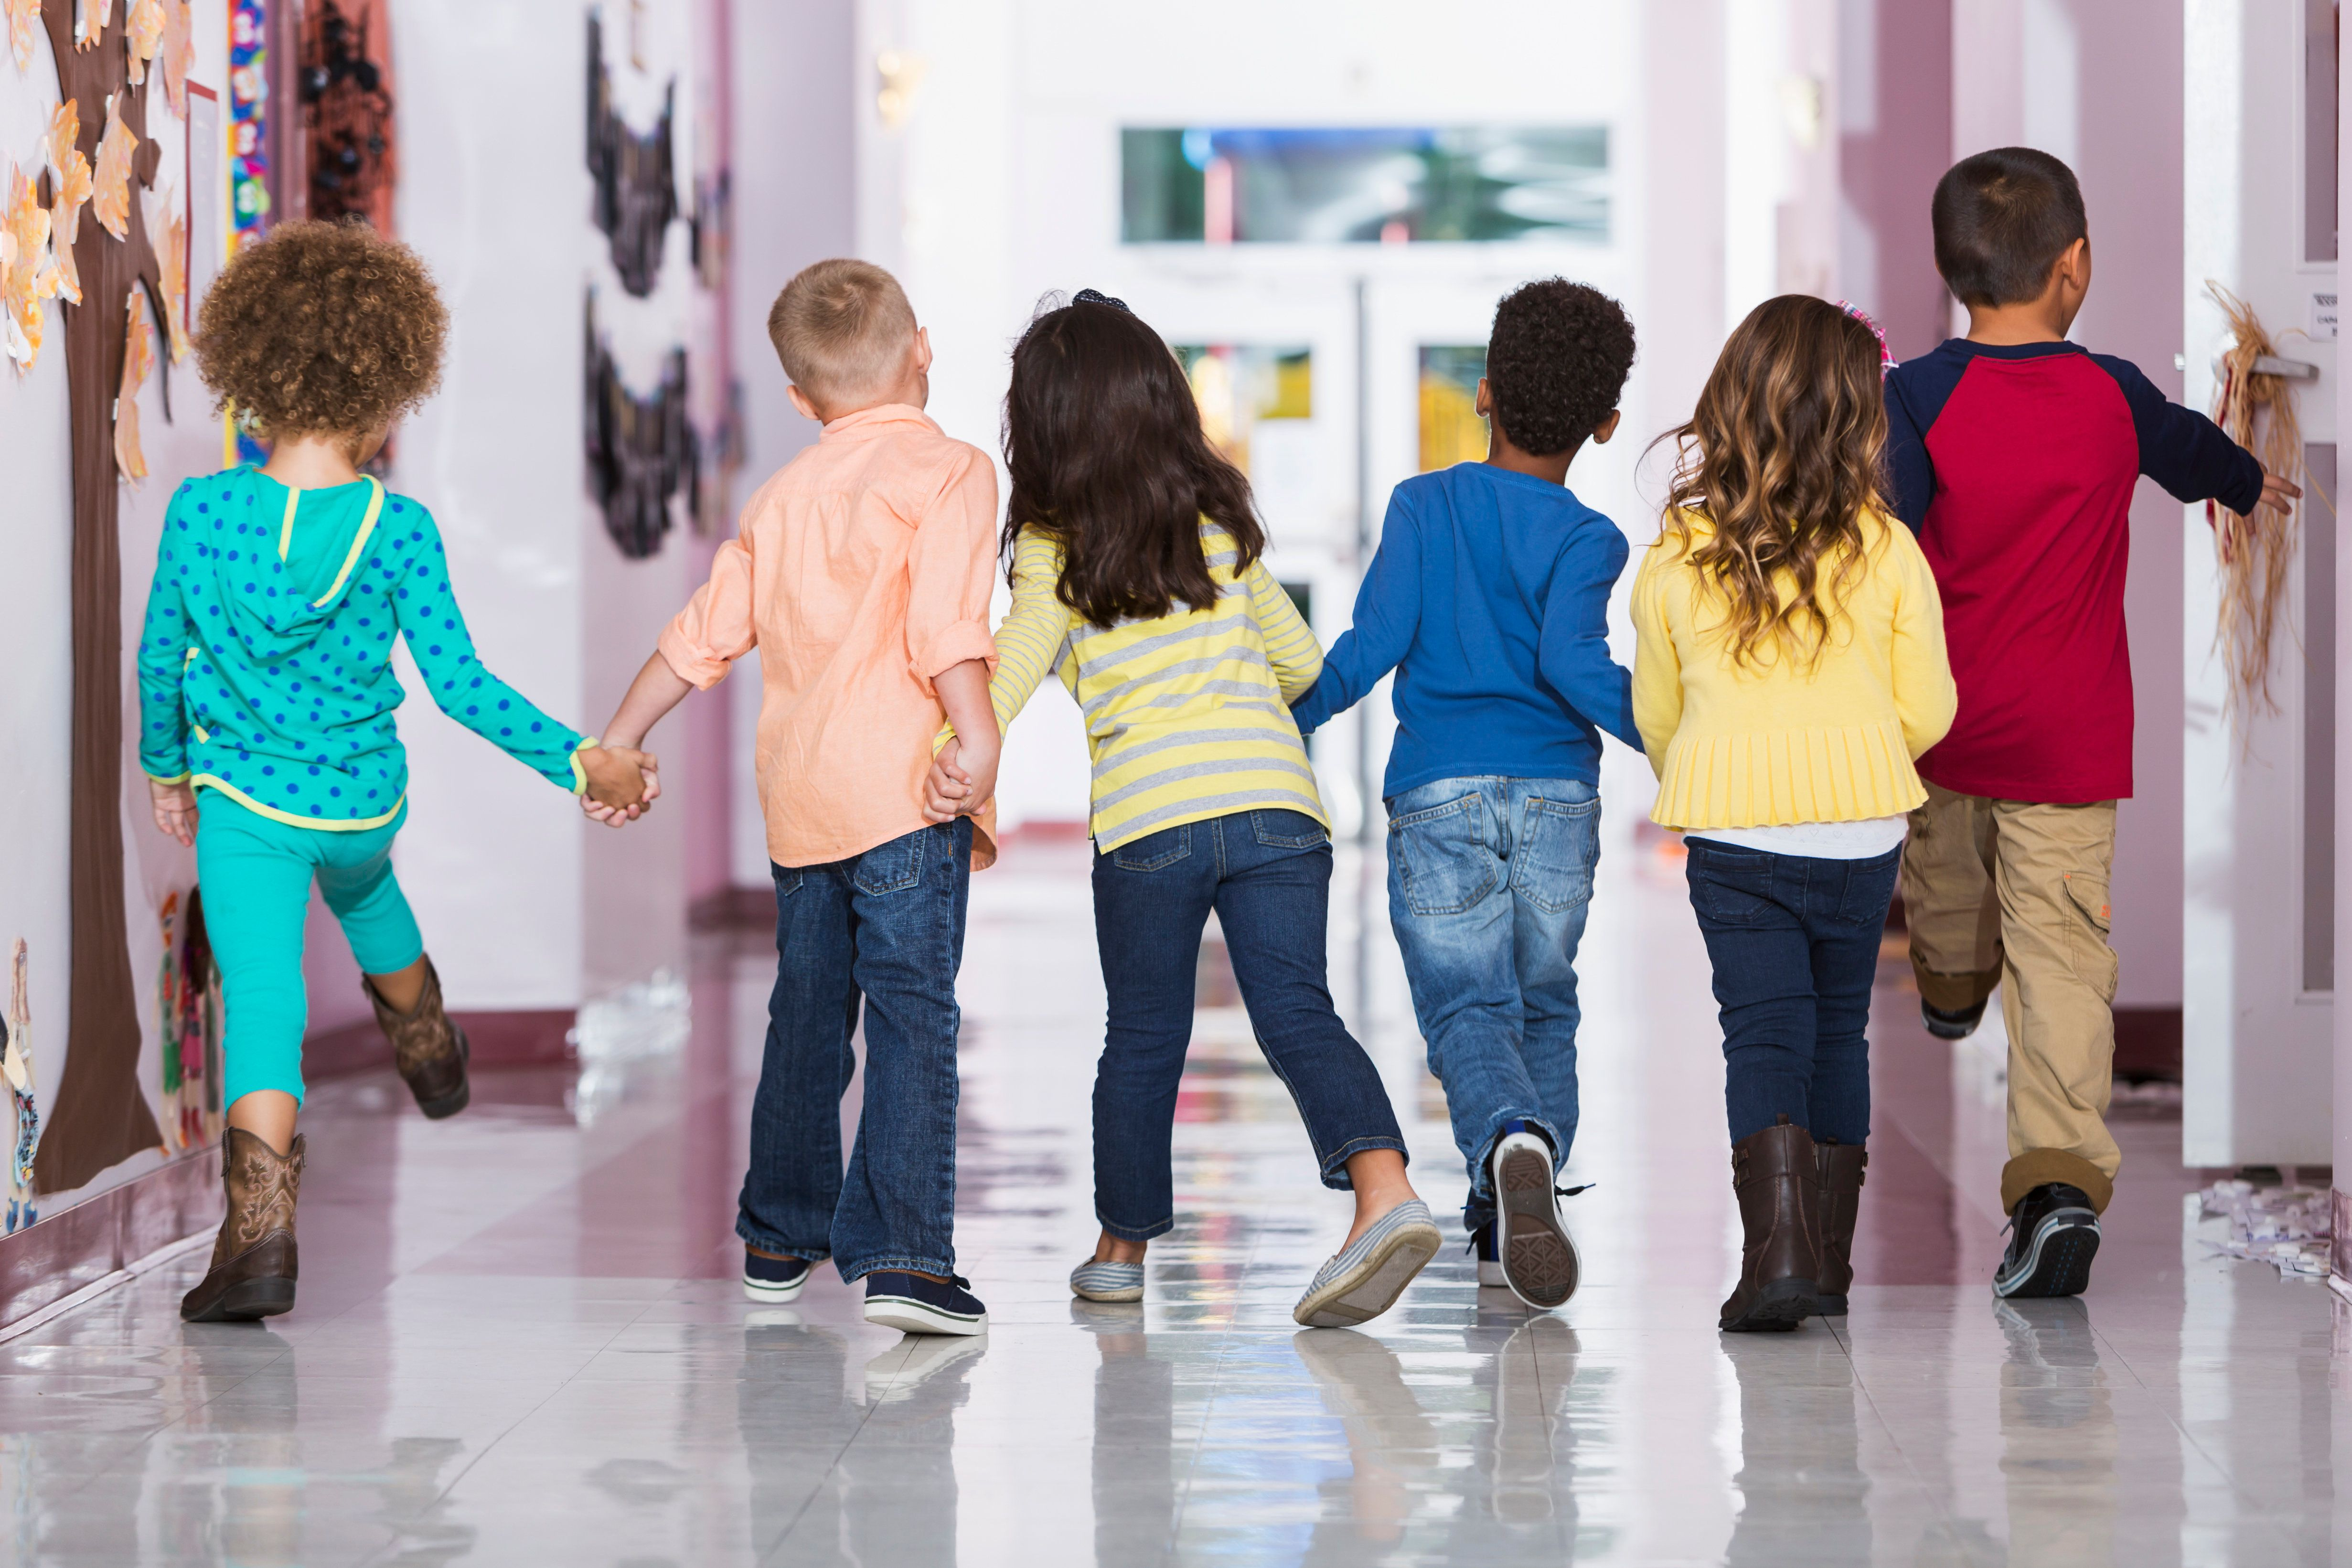 Rear view of a multi-ethnic group of six children holding hands, walking down a school hallway together.  They are in kindergarten or preschool 4 to 6 years old.